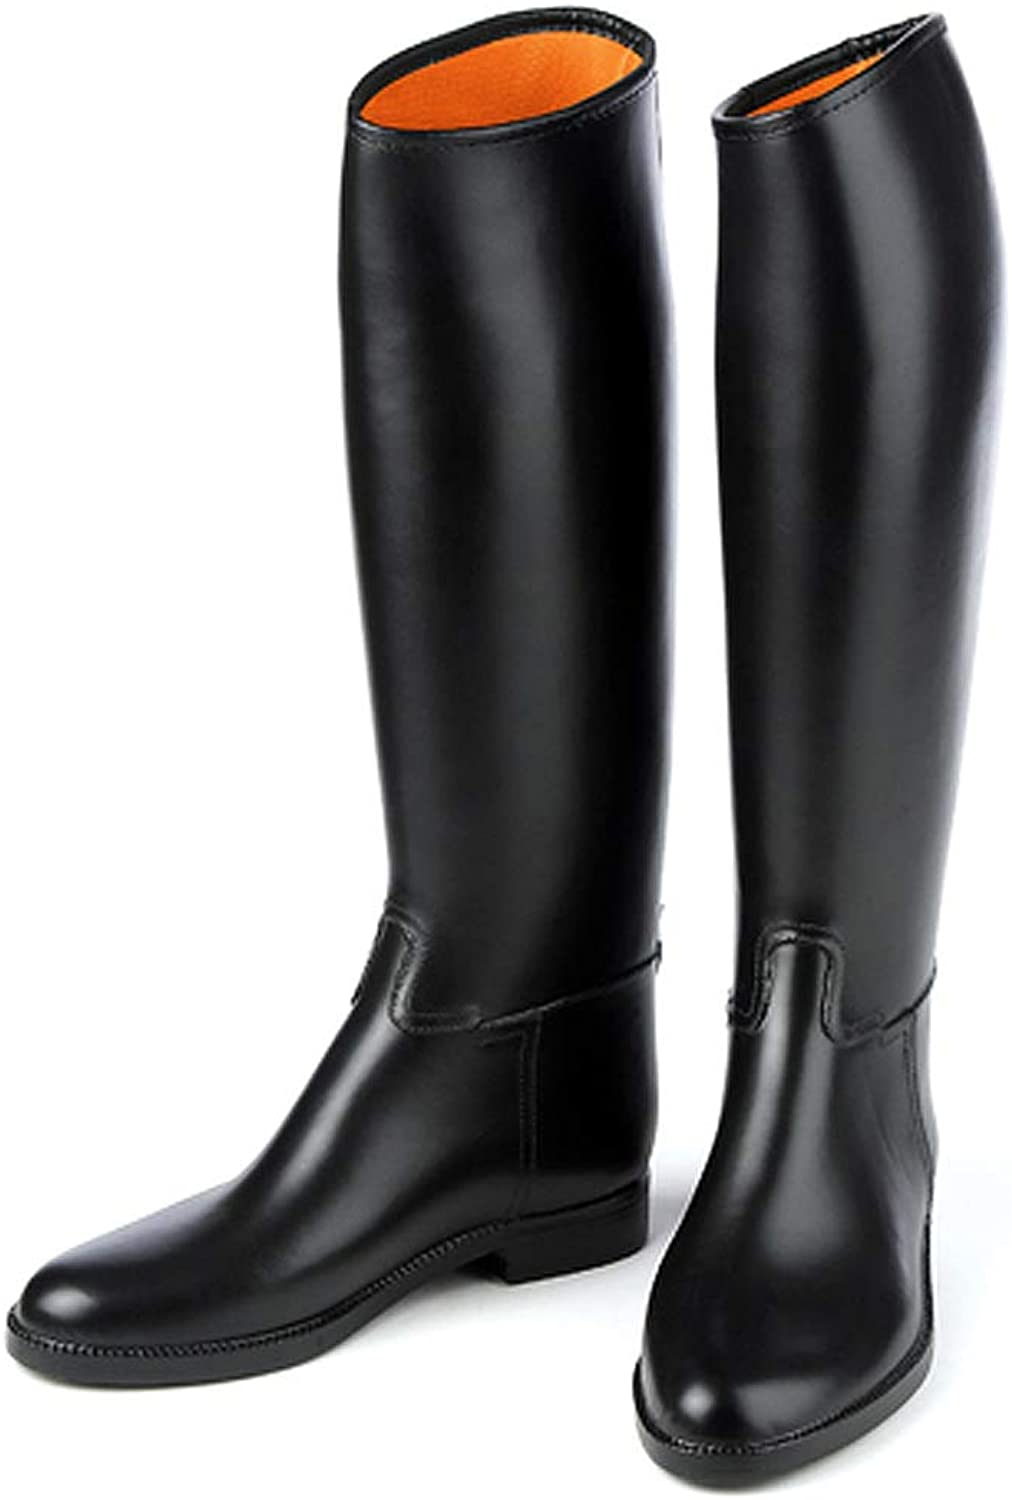 Derby Ovation Cottage - Men's Lined Rubber Riding Boot -Mens 11 (Euro 45) (Black)